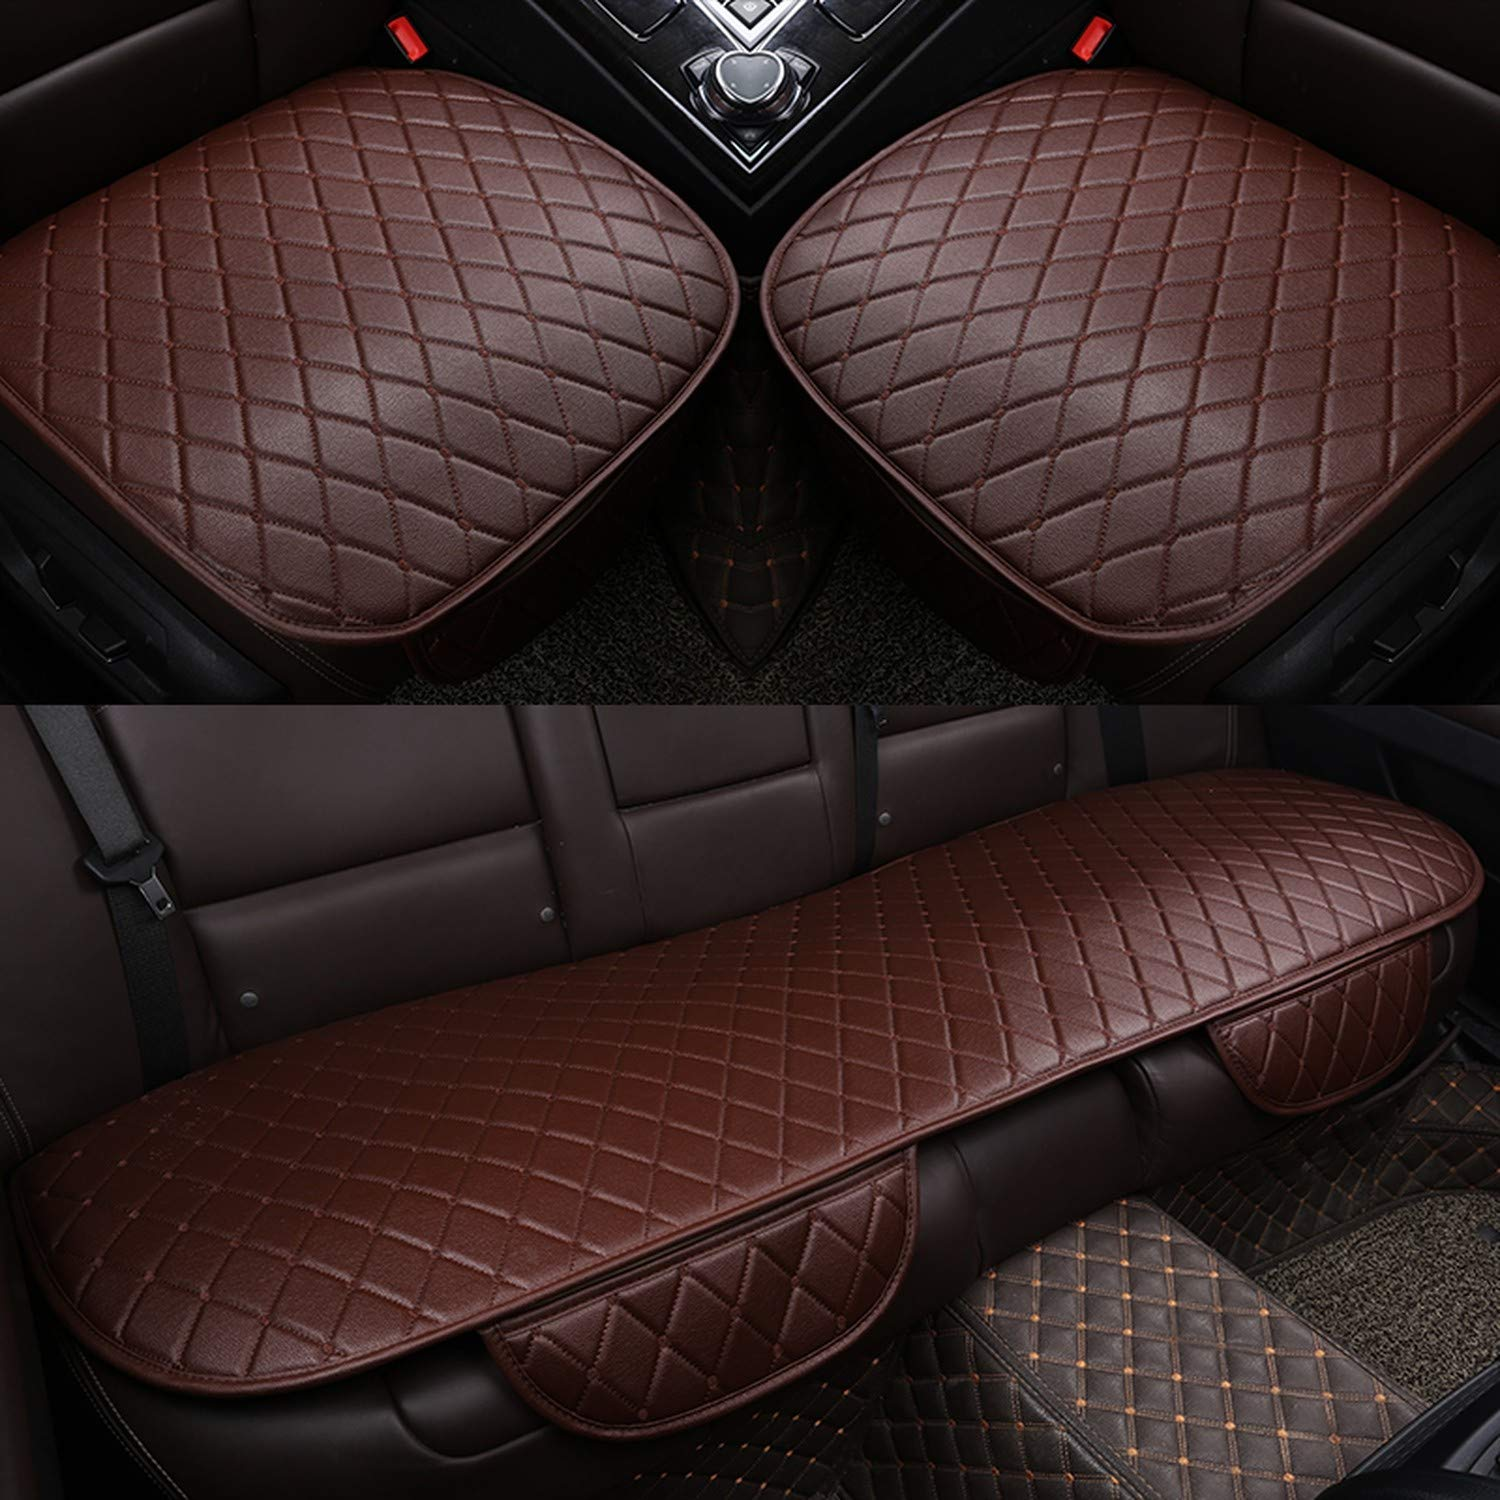 Universal Leather Car Seat Cover Cushion Front Rear Backseat Seat Cover Auto Chair Seat Protector Mat Pad Interior Accessories,Beige